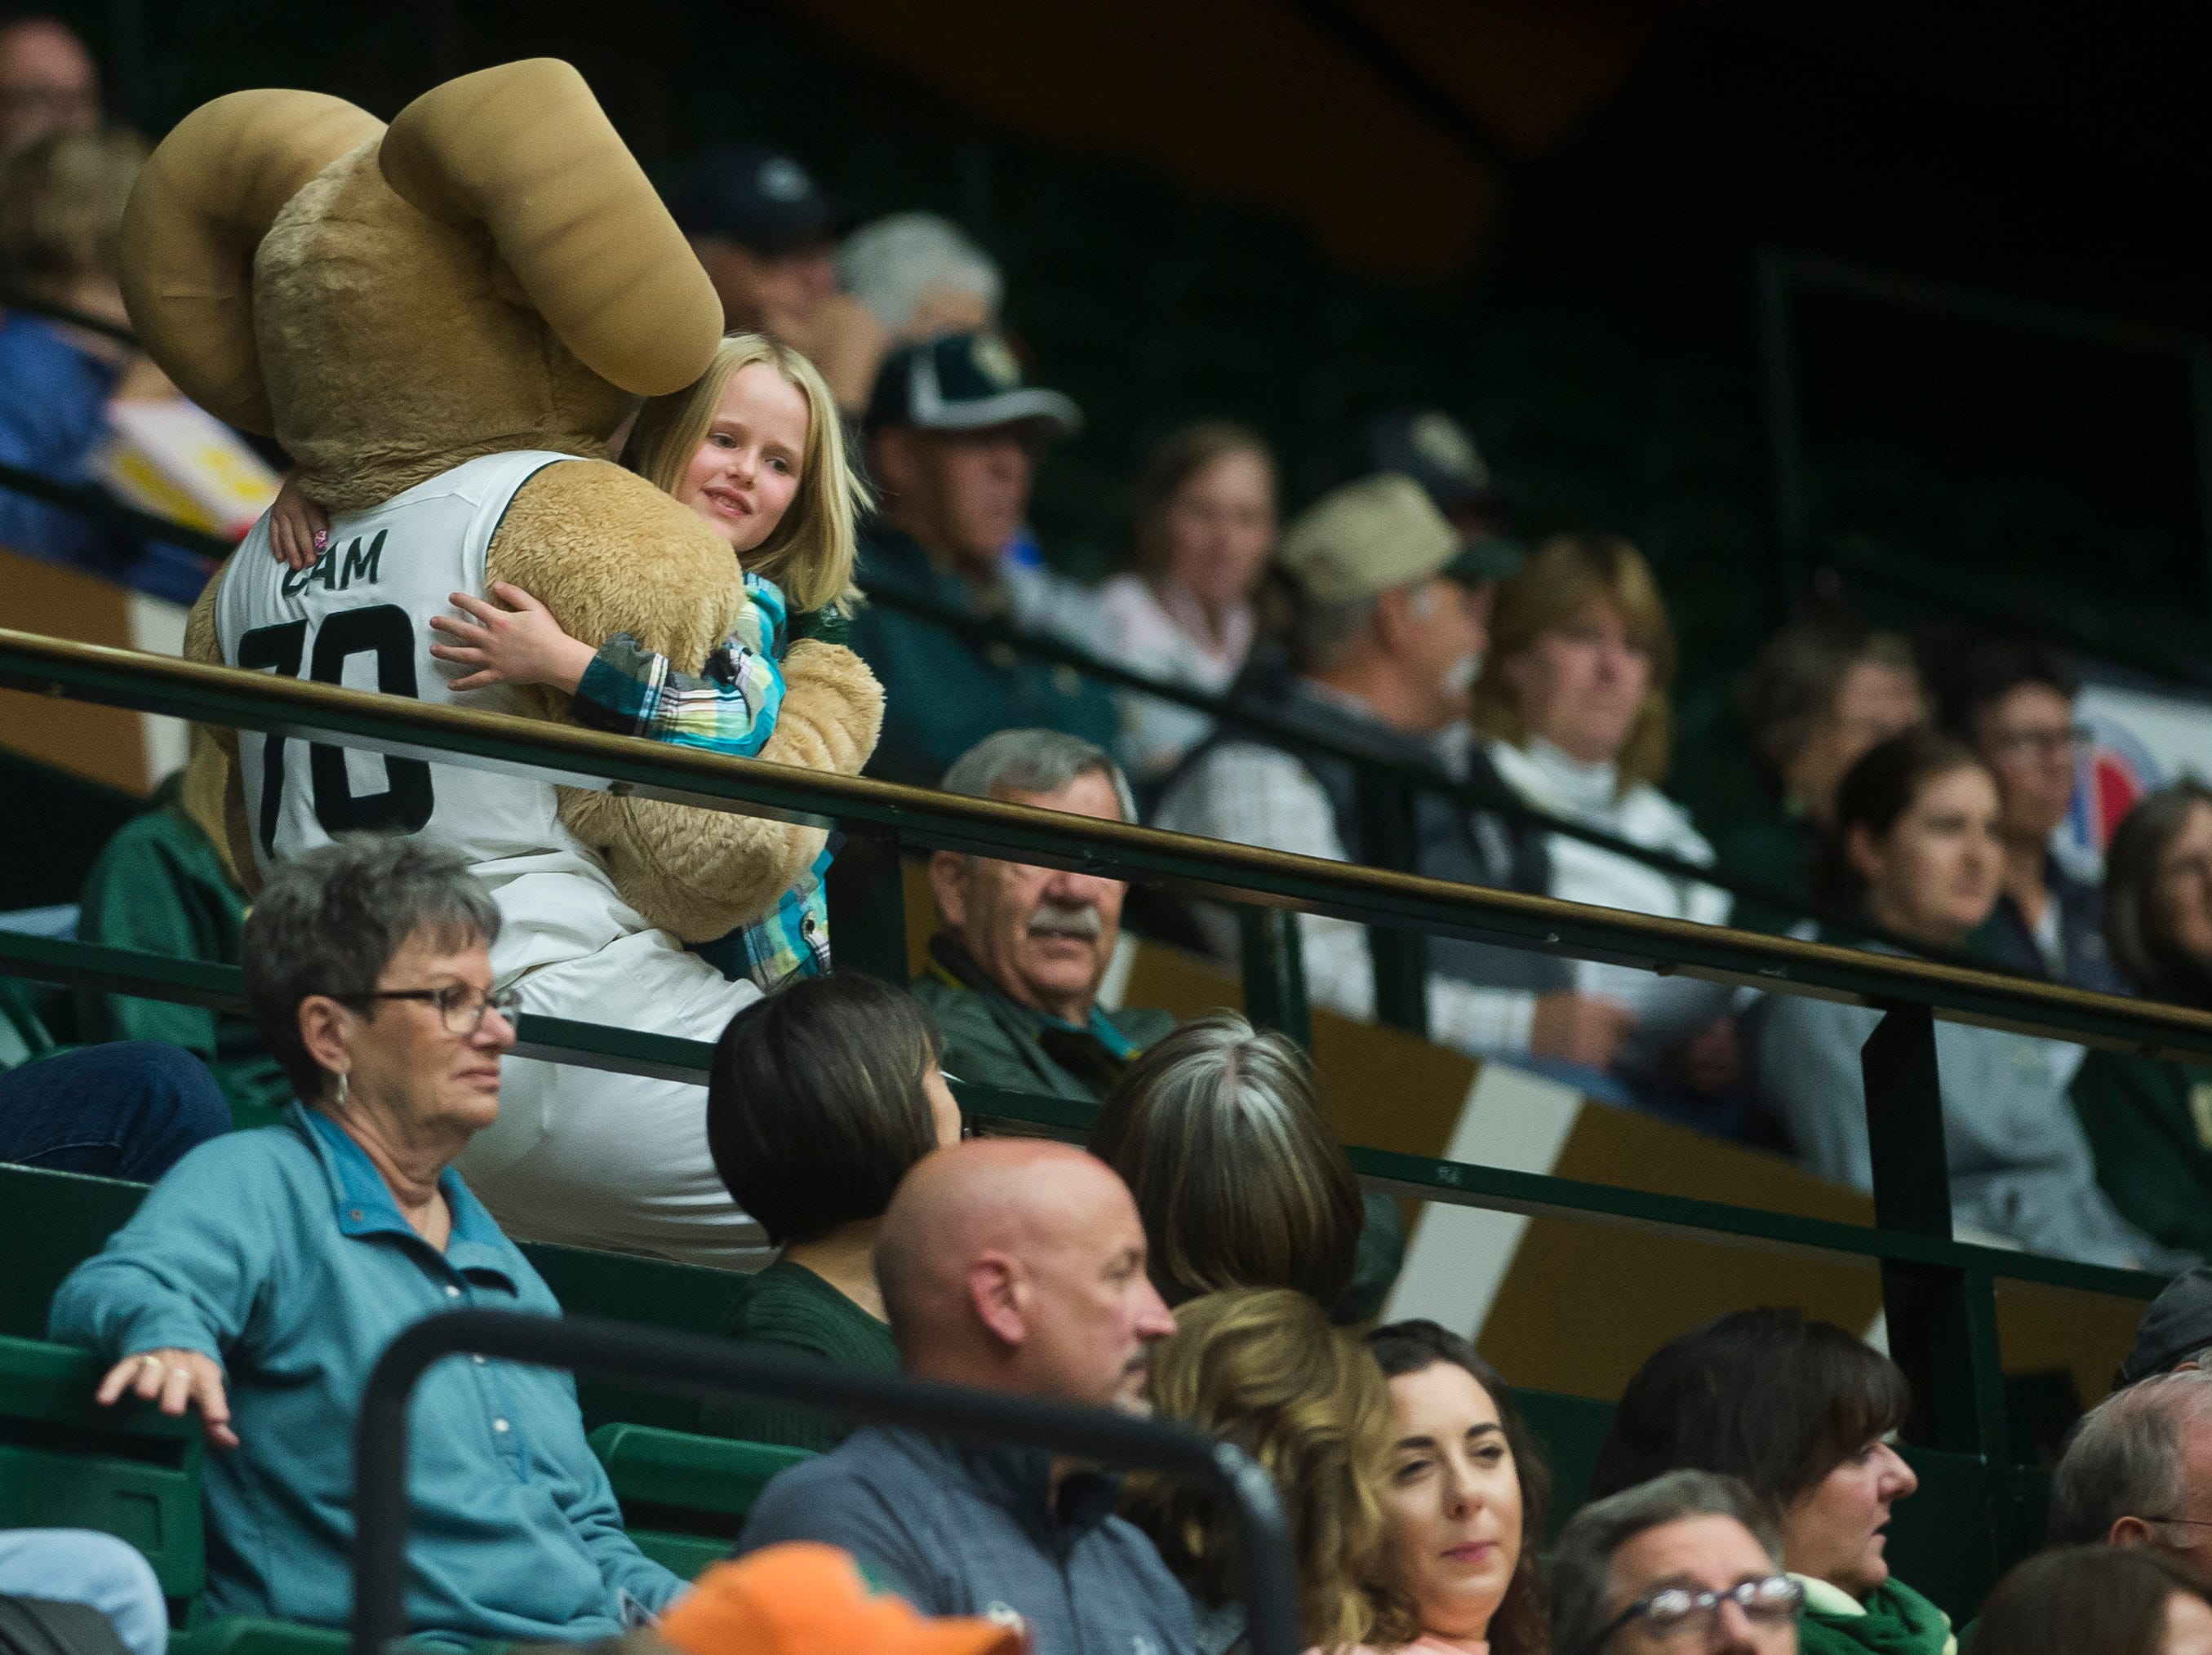 Colorado State University mascot Cam the Ram hugs a young fan during a game against Colorado Christian University on Wednesday, Nov. 7, 2018, at Moby Arena in Fort Collins, Colo.